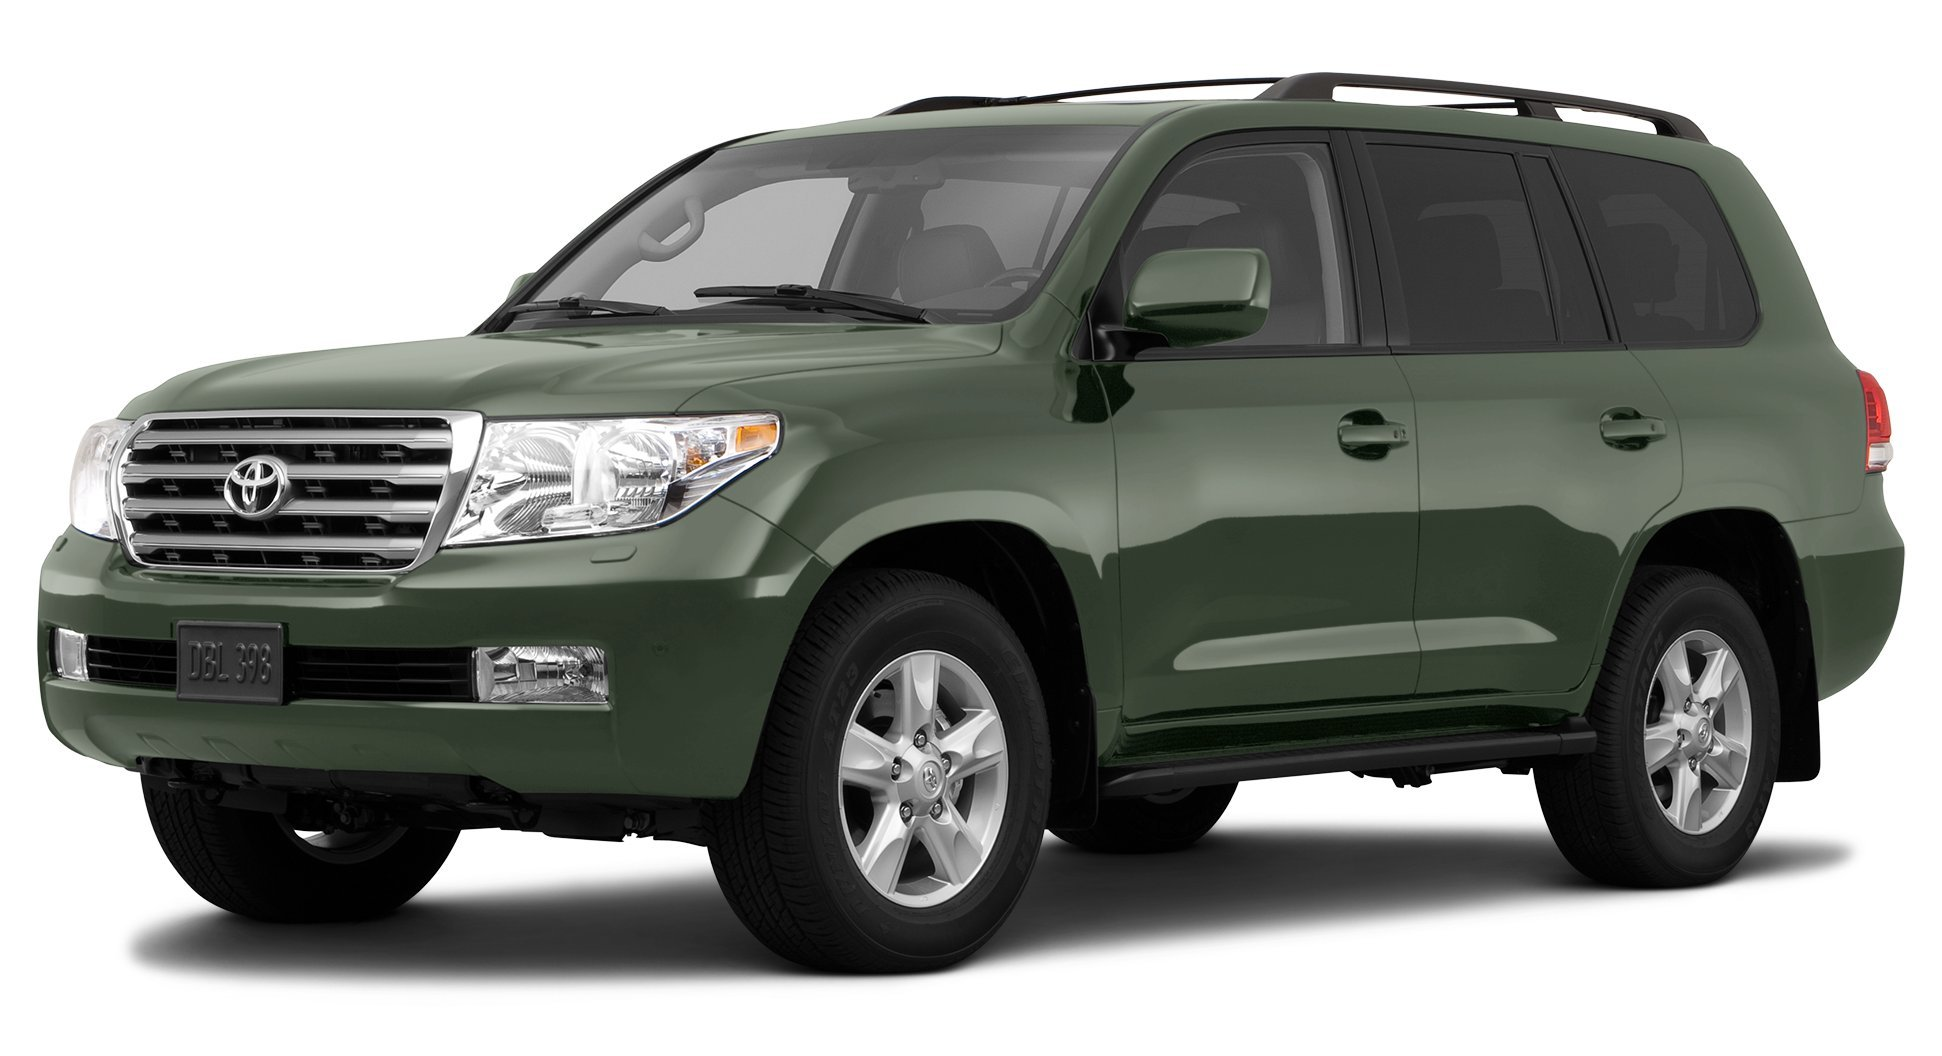 Toyota Land Cruiser  Wheel Drive Gs